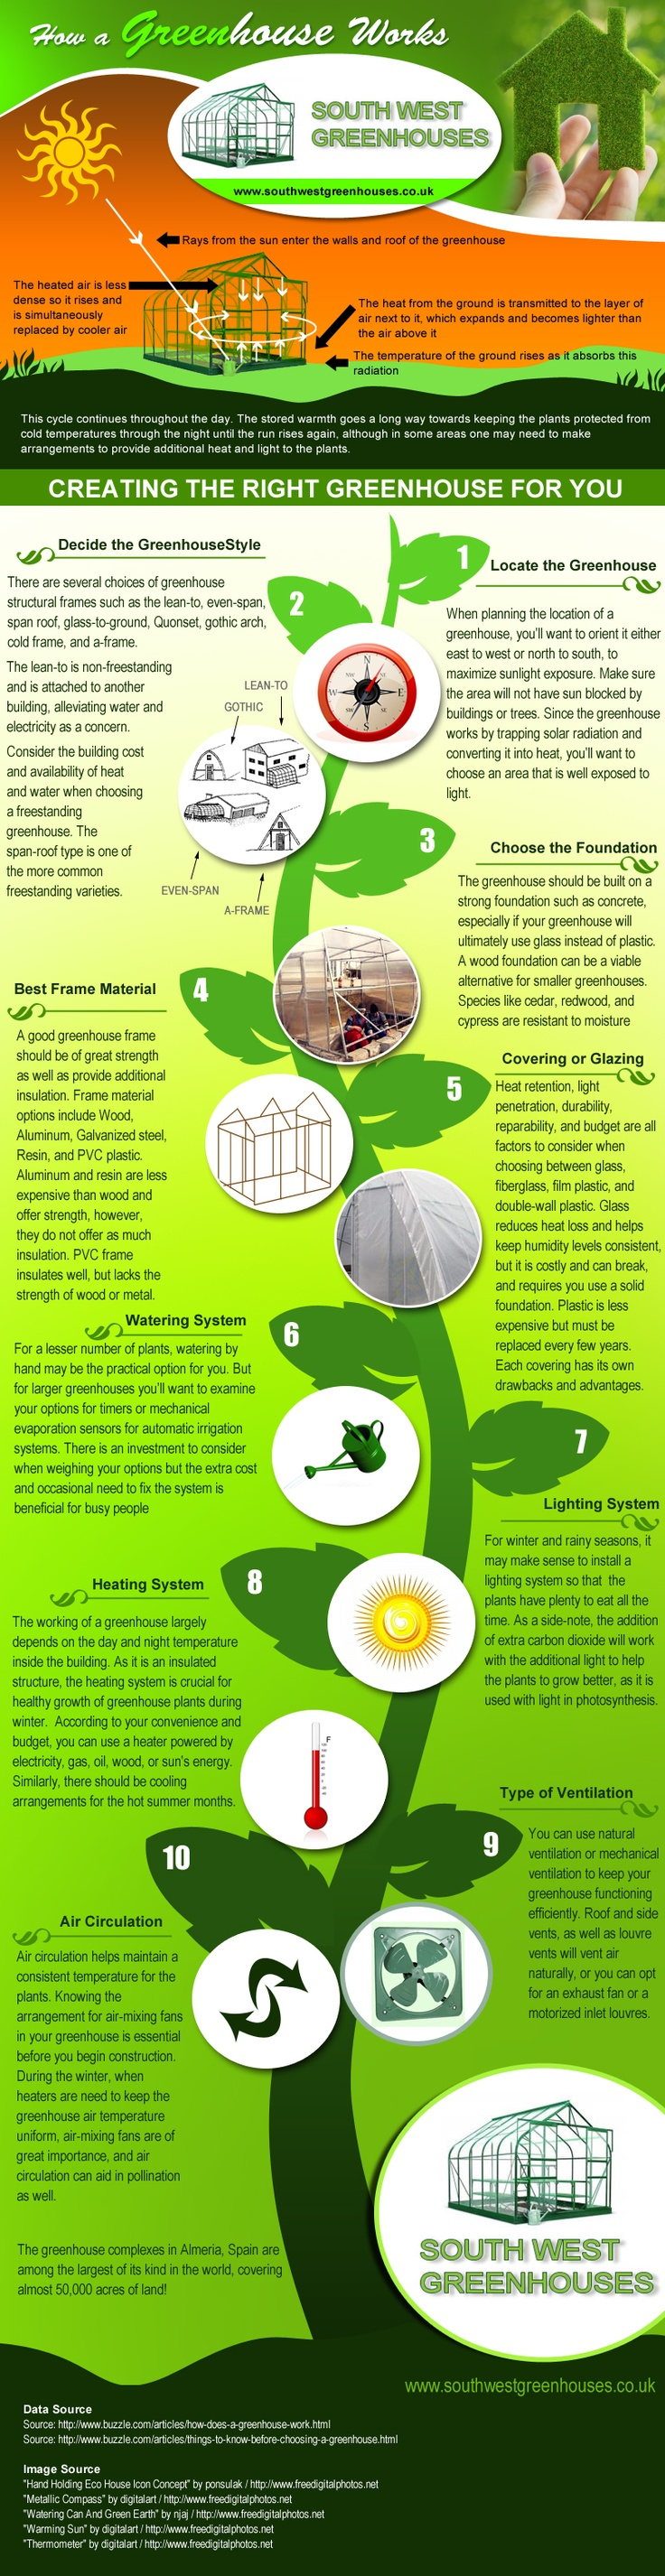 Going Green? Tips on How to Create an Effective Greenhouse